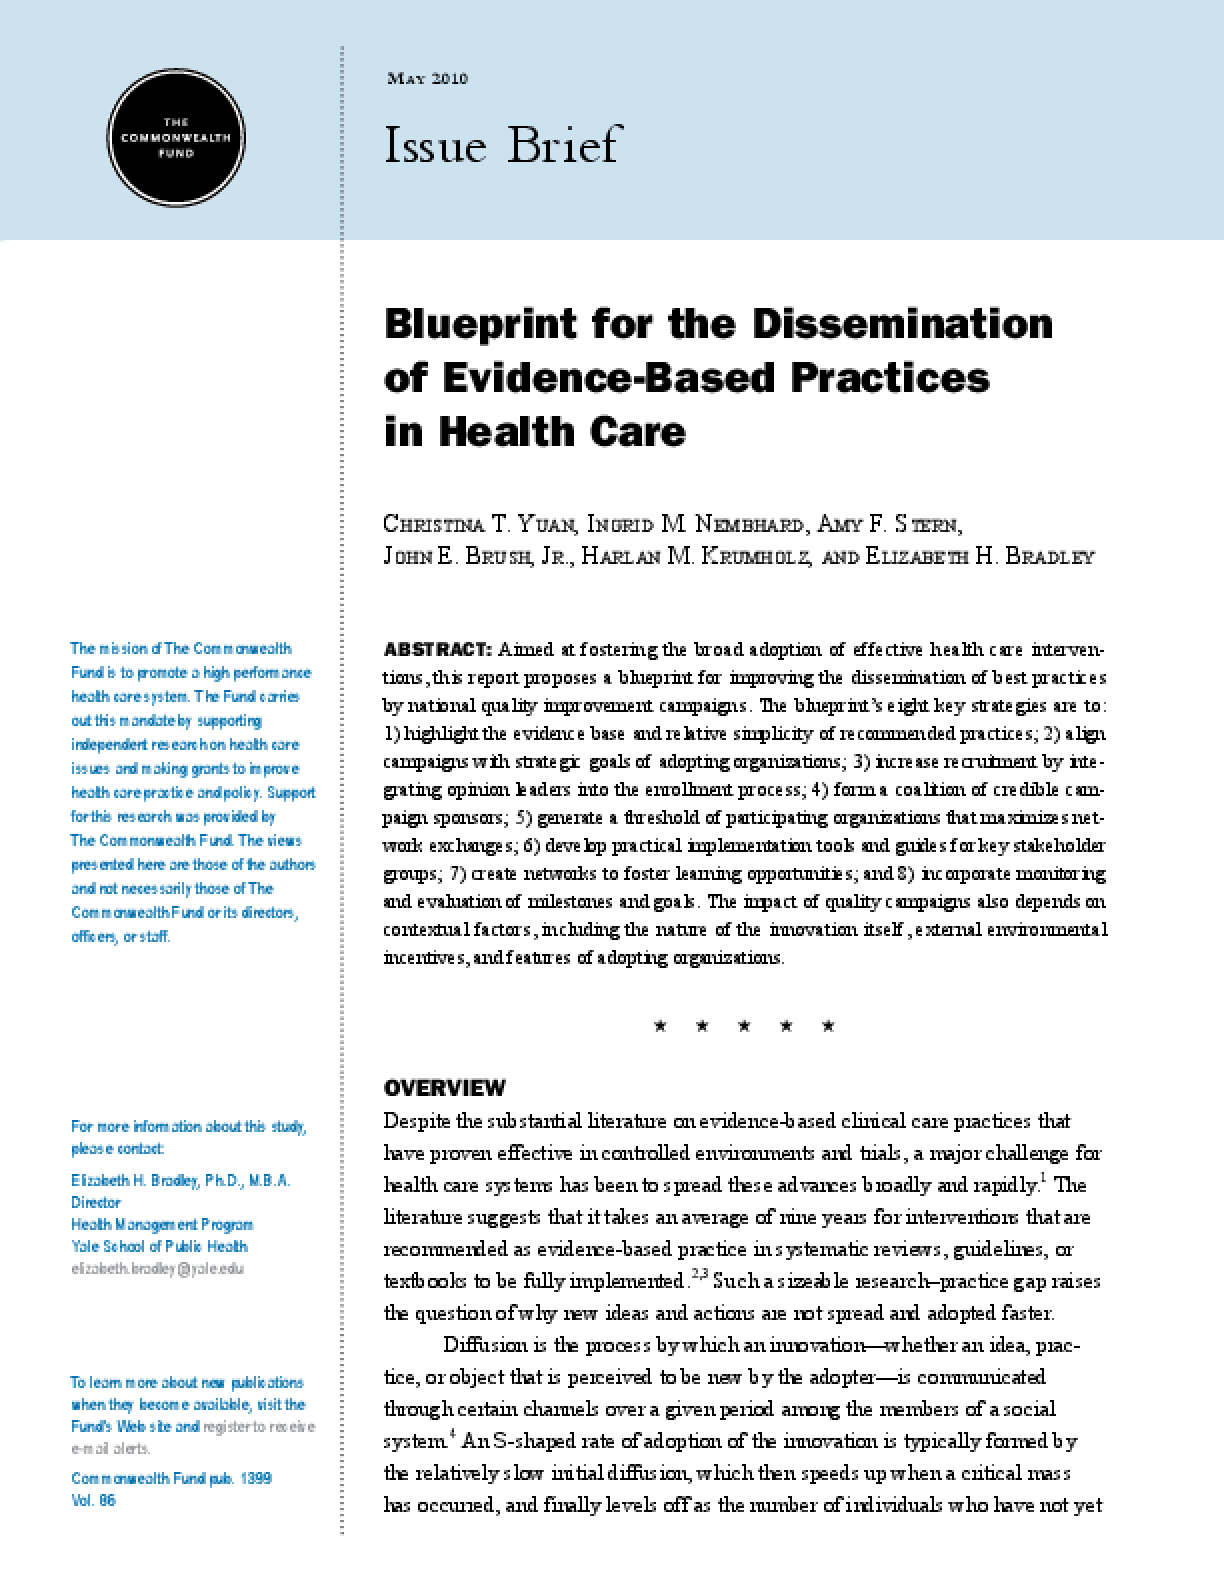 Blueprint for the Dissemination of Evidence-Based Practices in Health Care